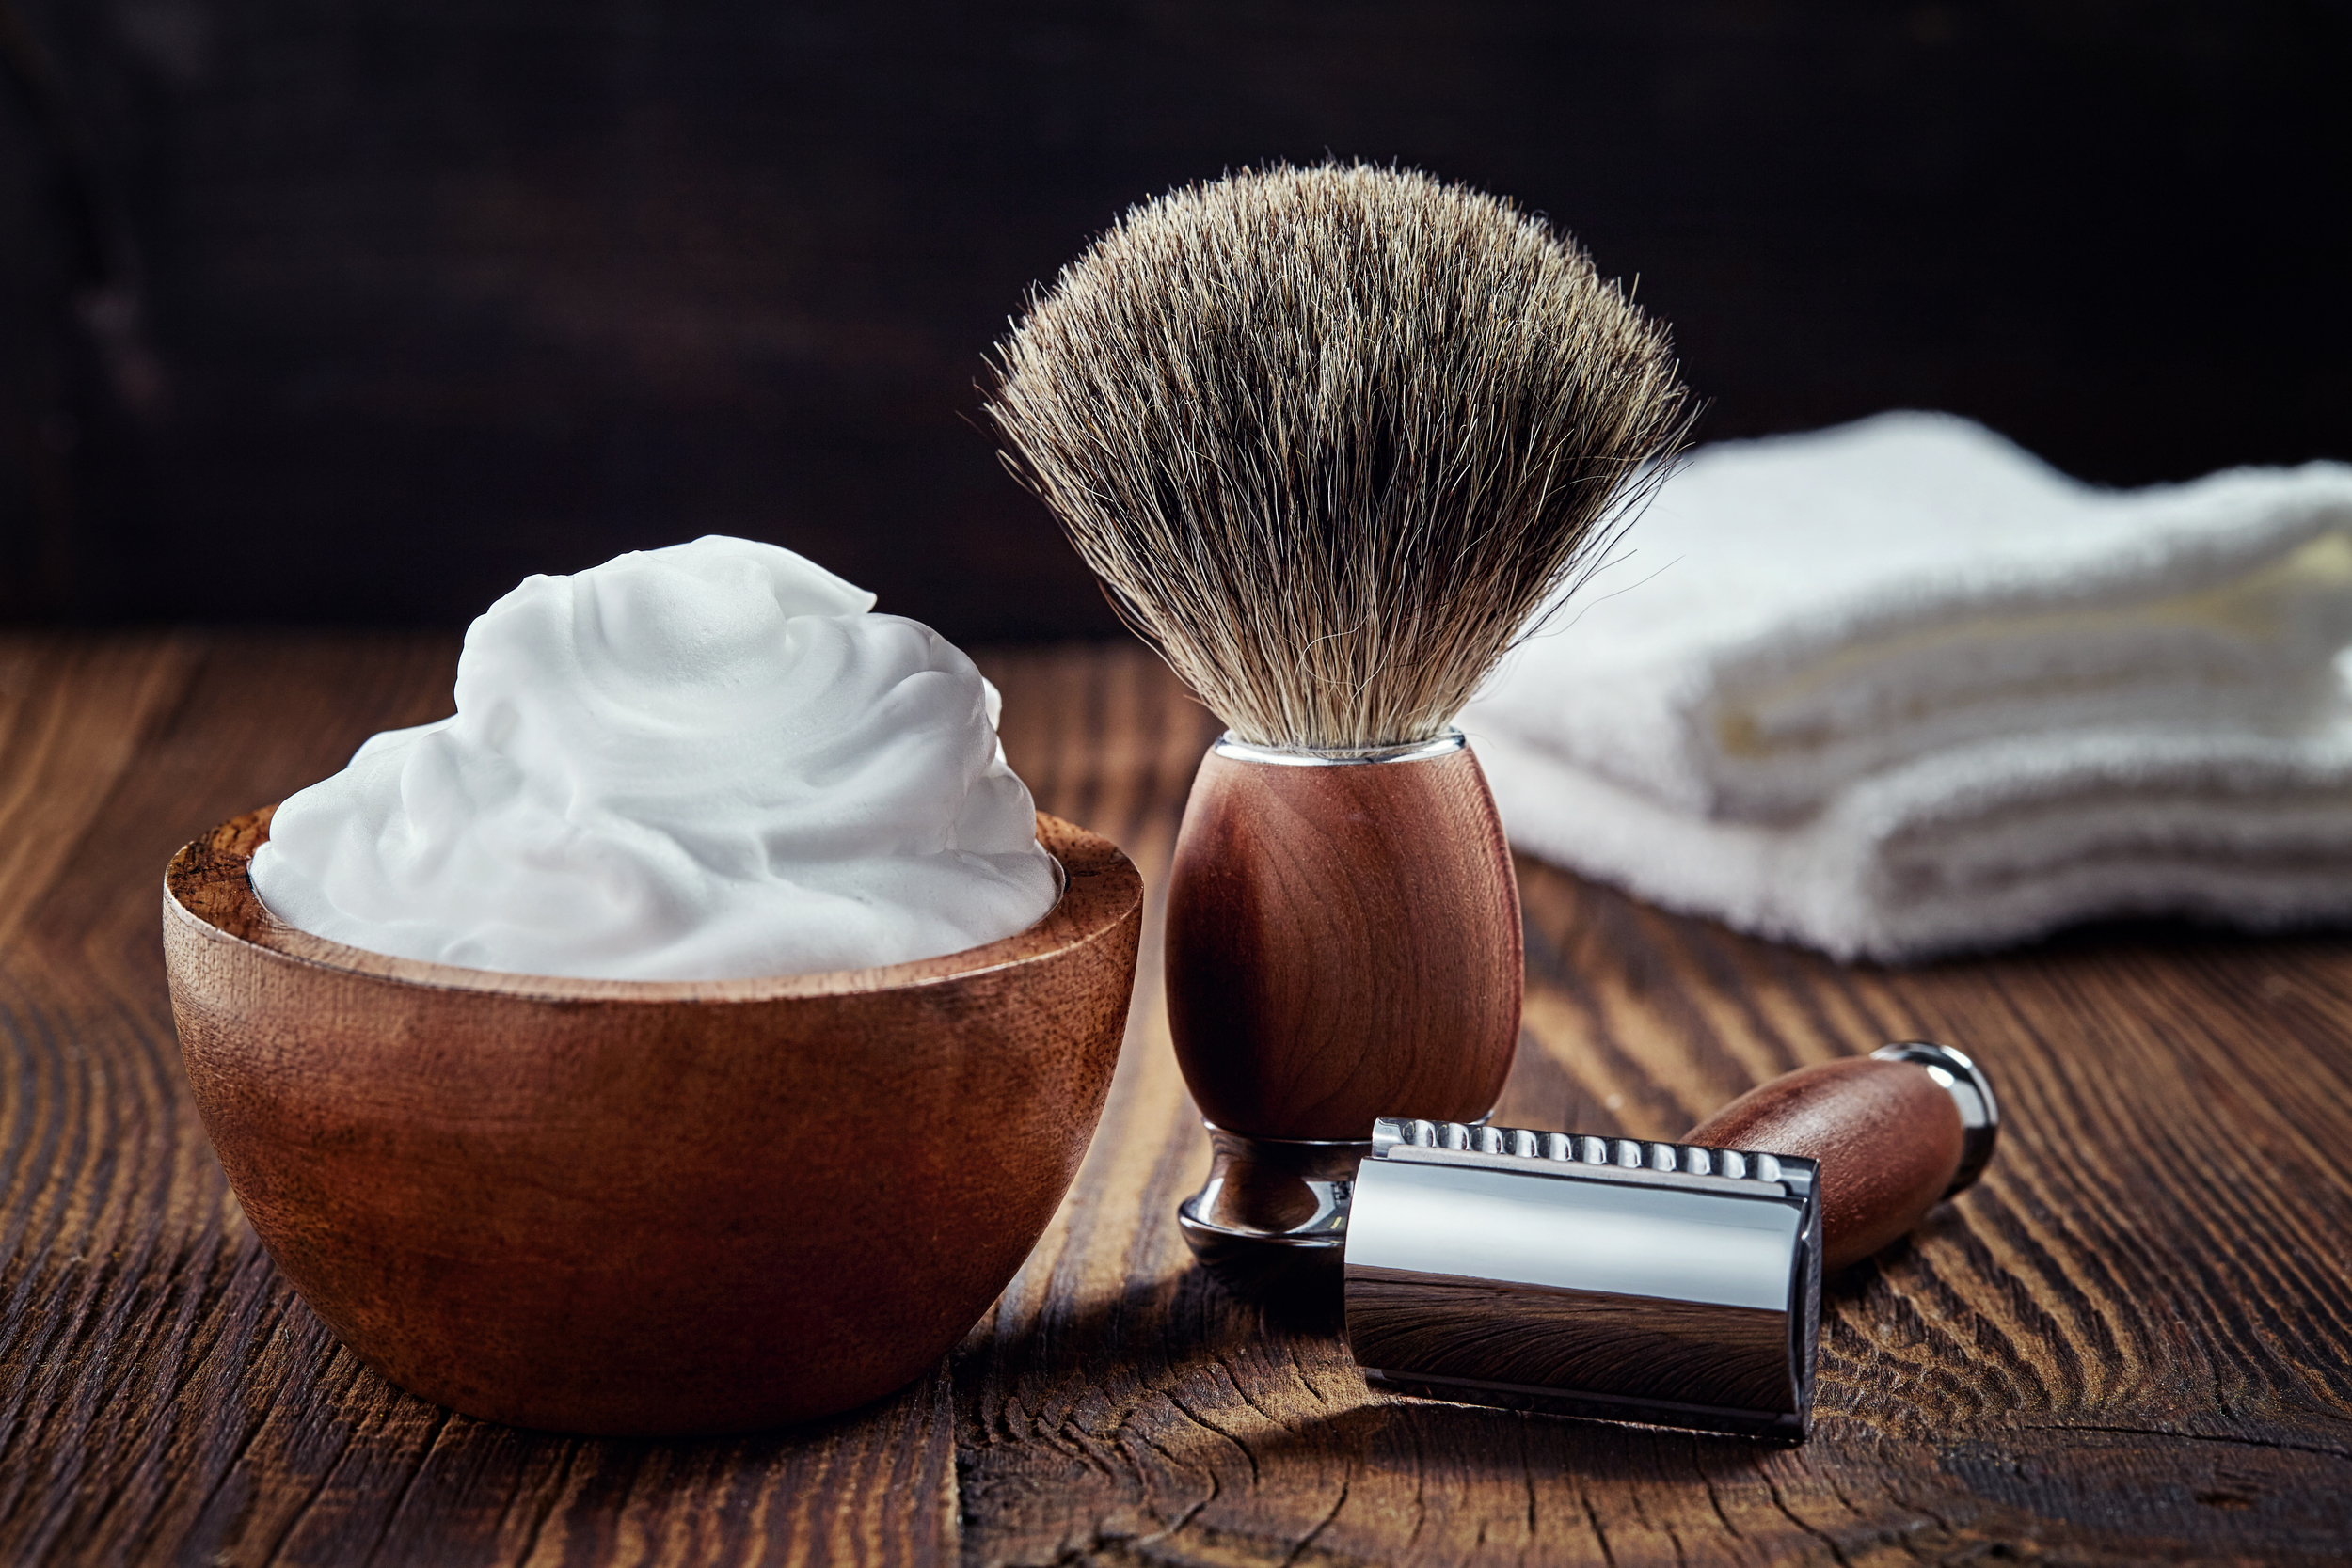 Tips for easier shaving, exfoliating and healthy skin for men.